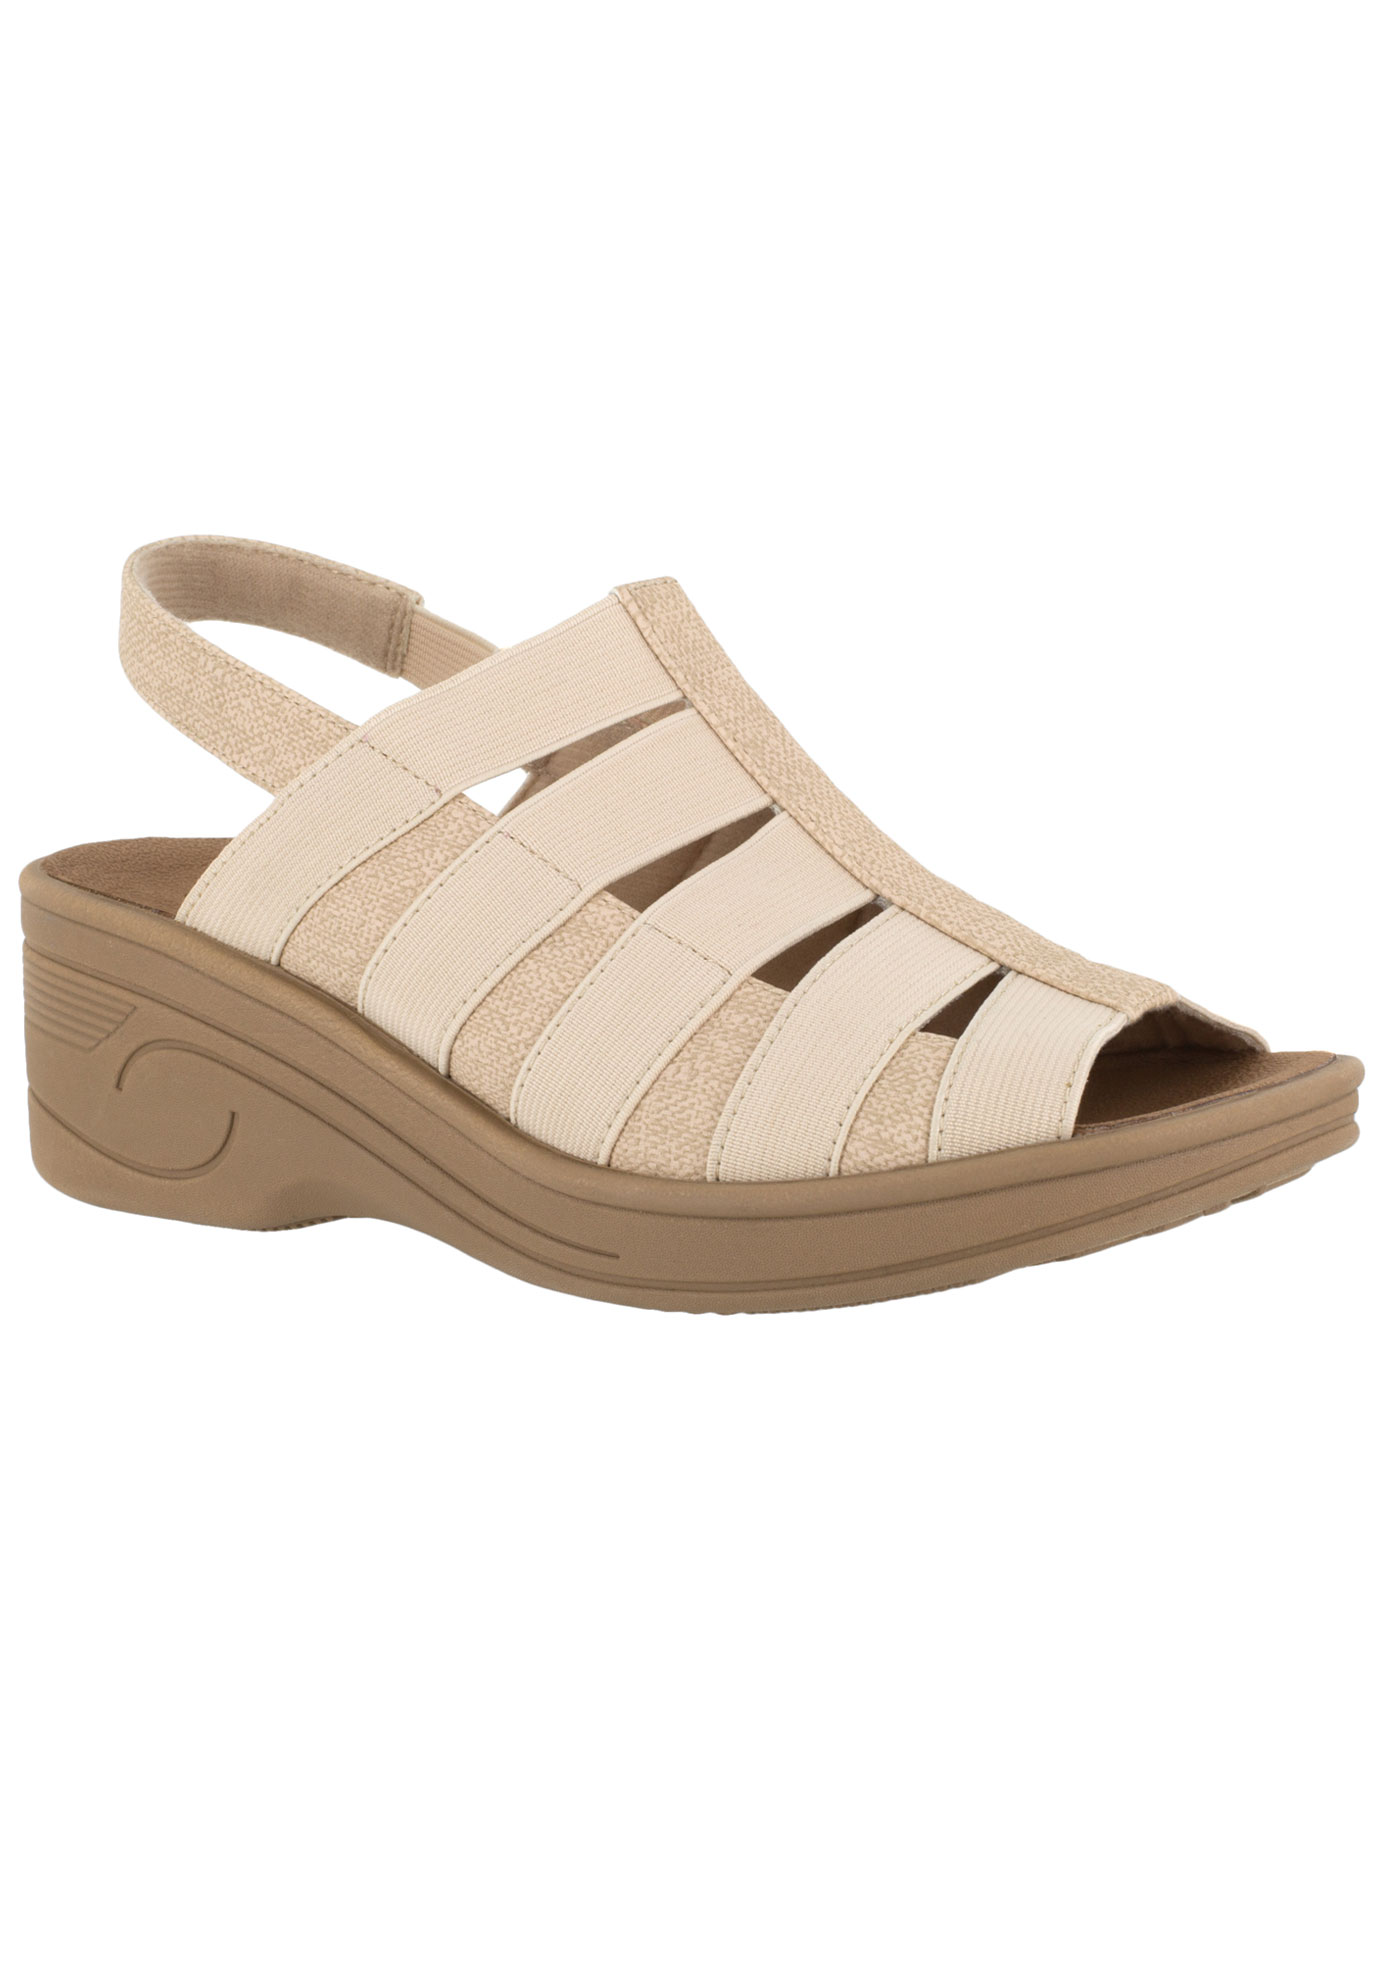 Floaty Sandals by Easy Street®,